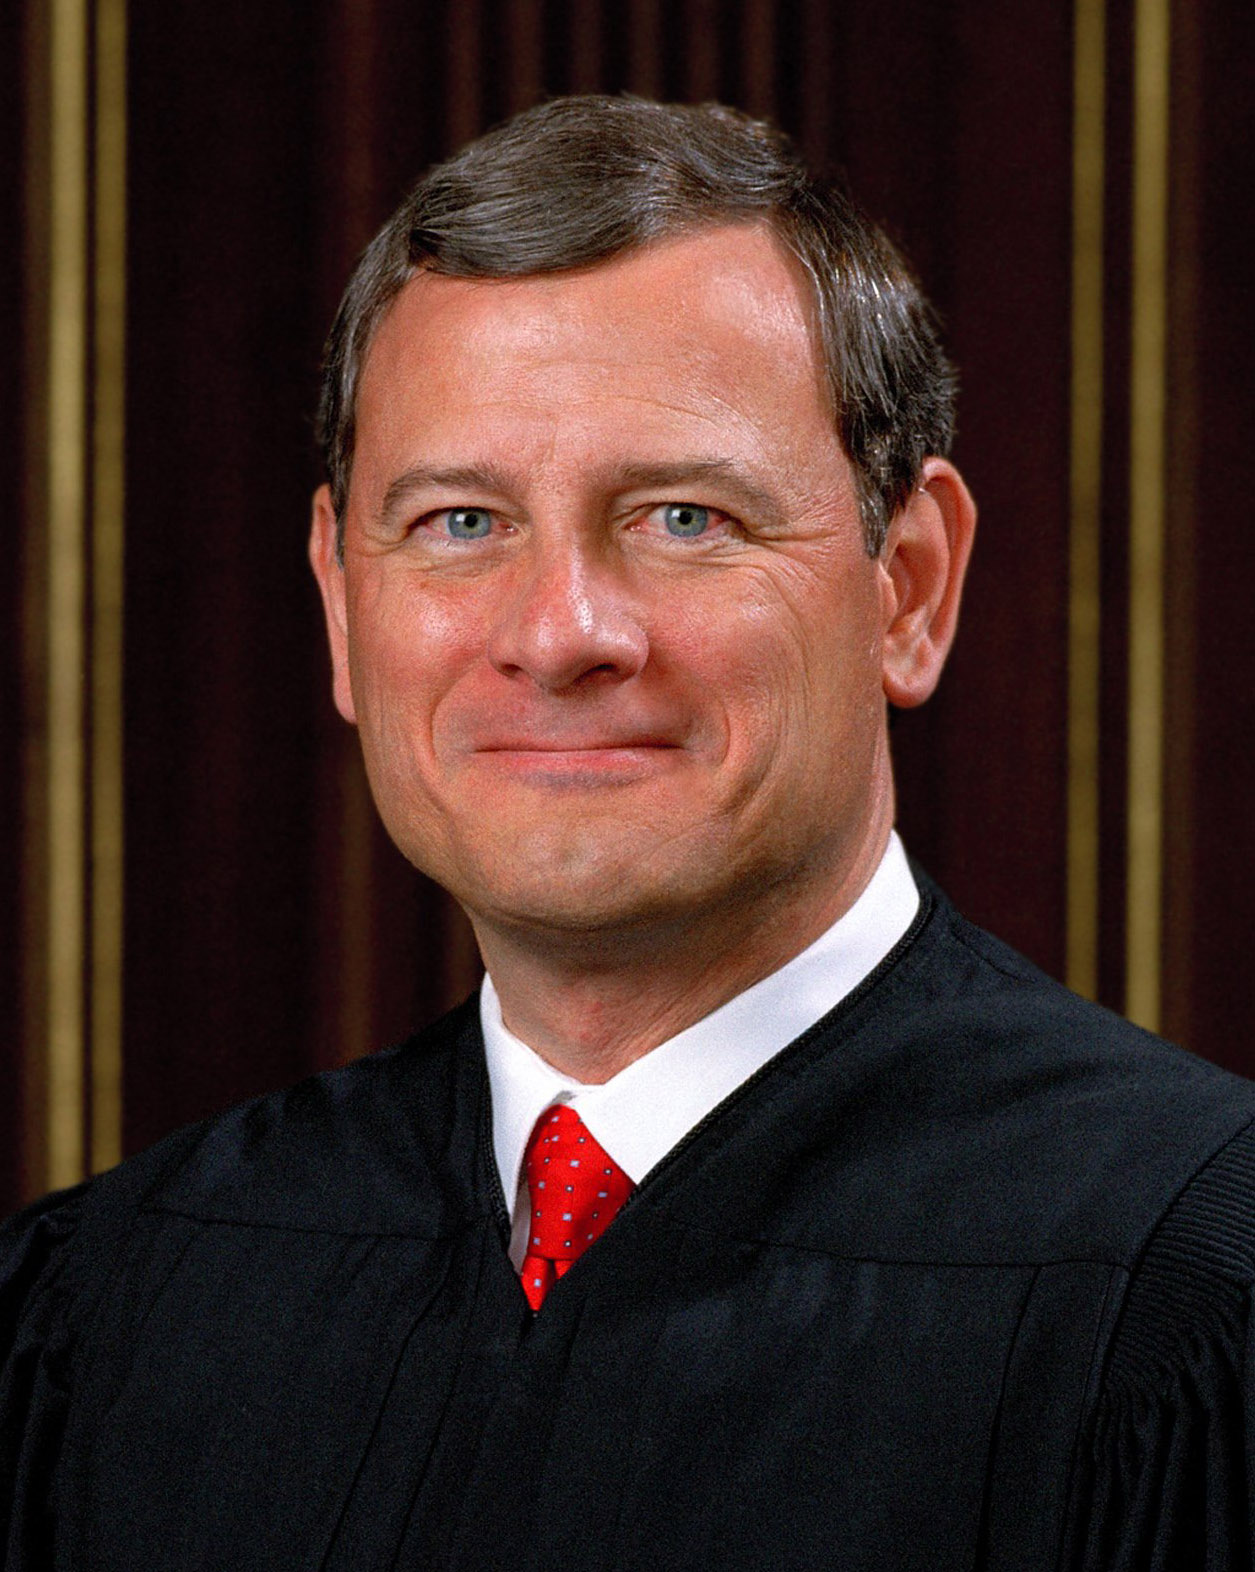 John Roberts - Chief Justice of the United States Supreme Court of ALL of We the People